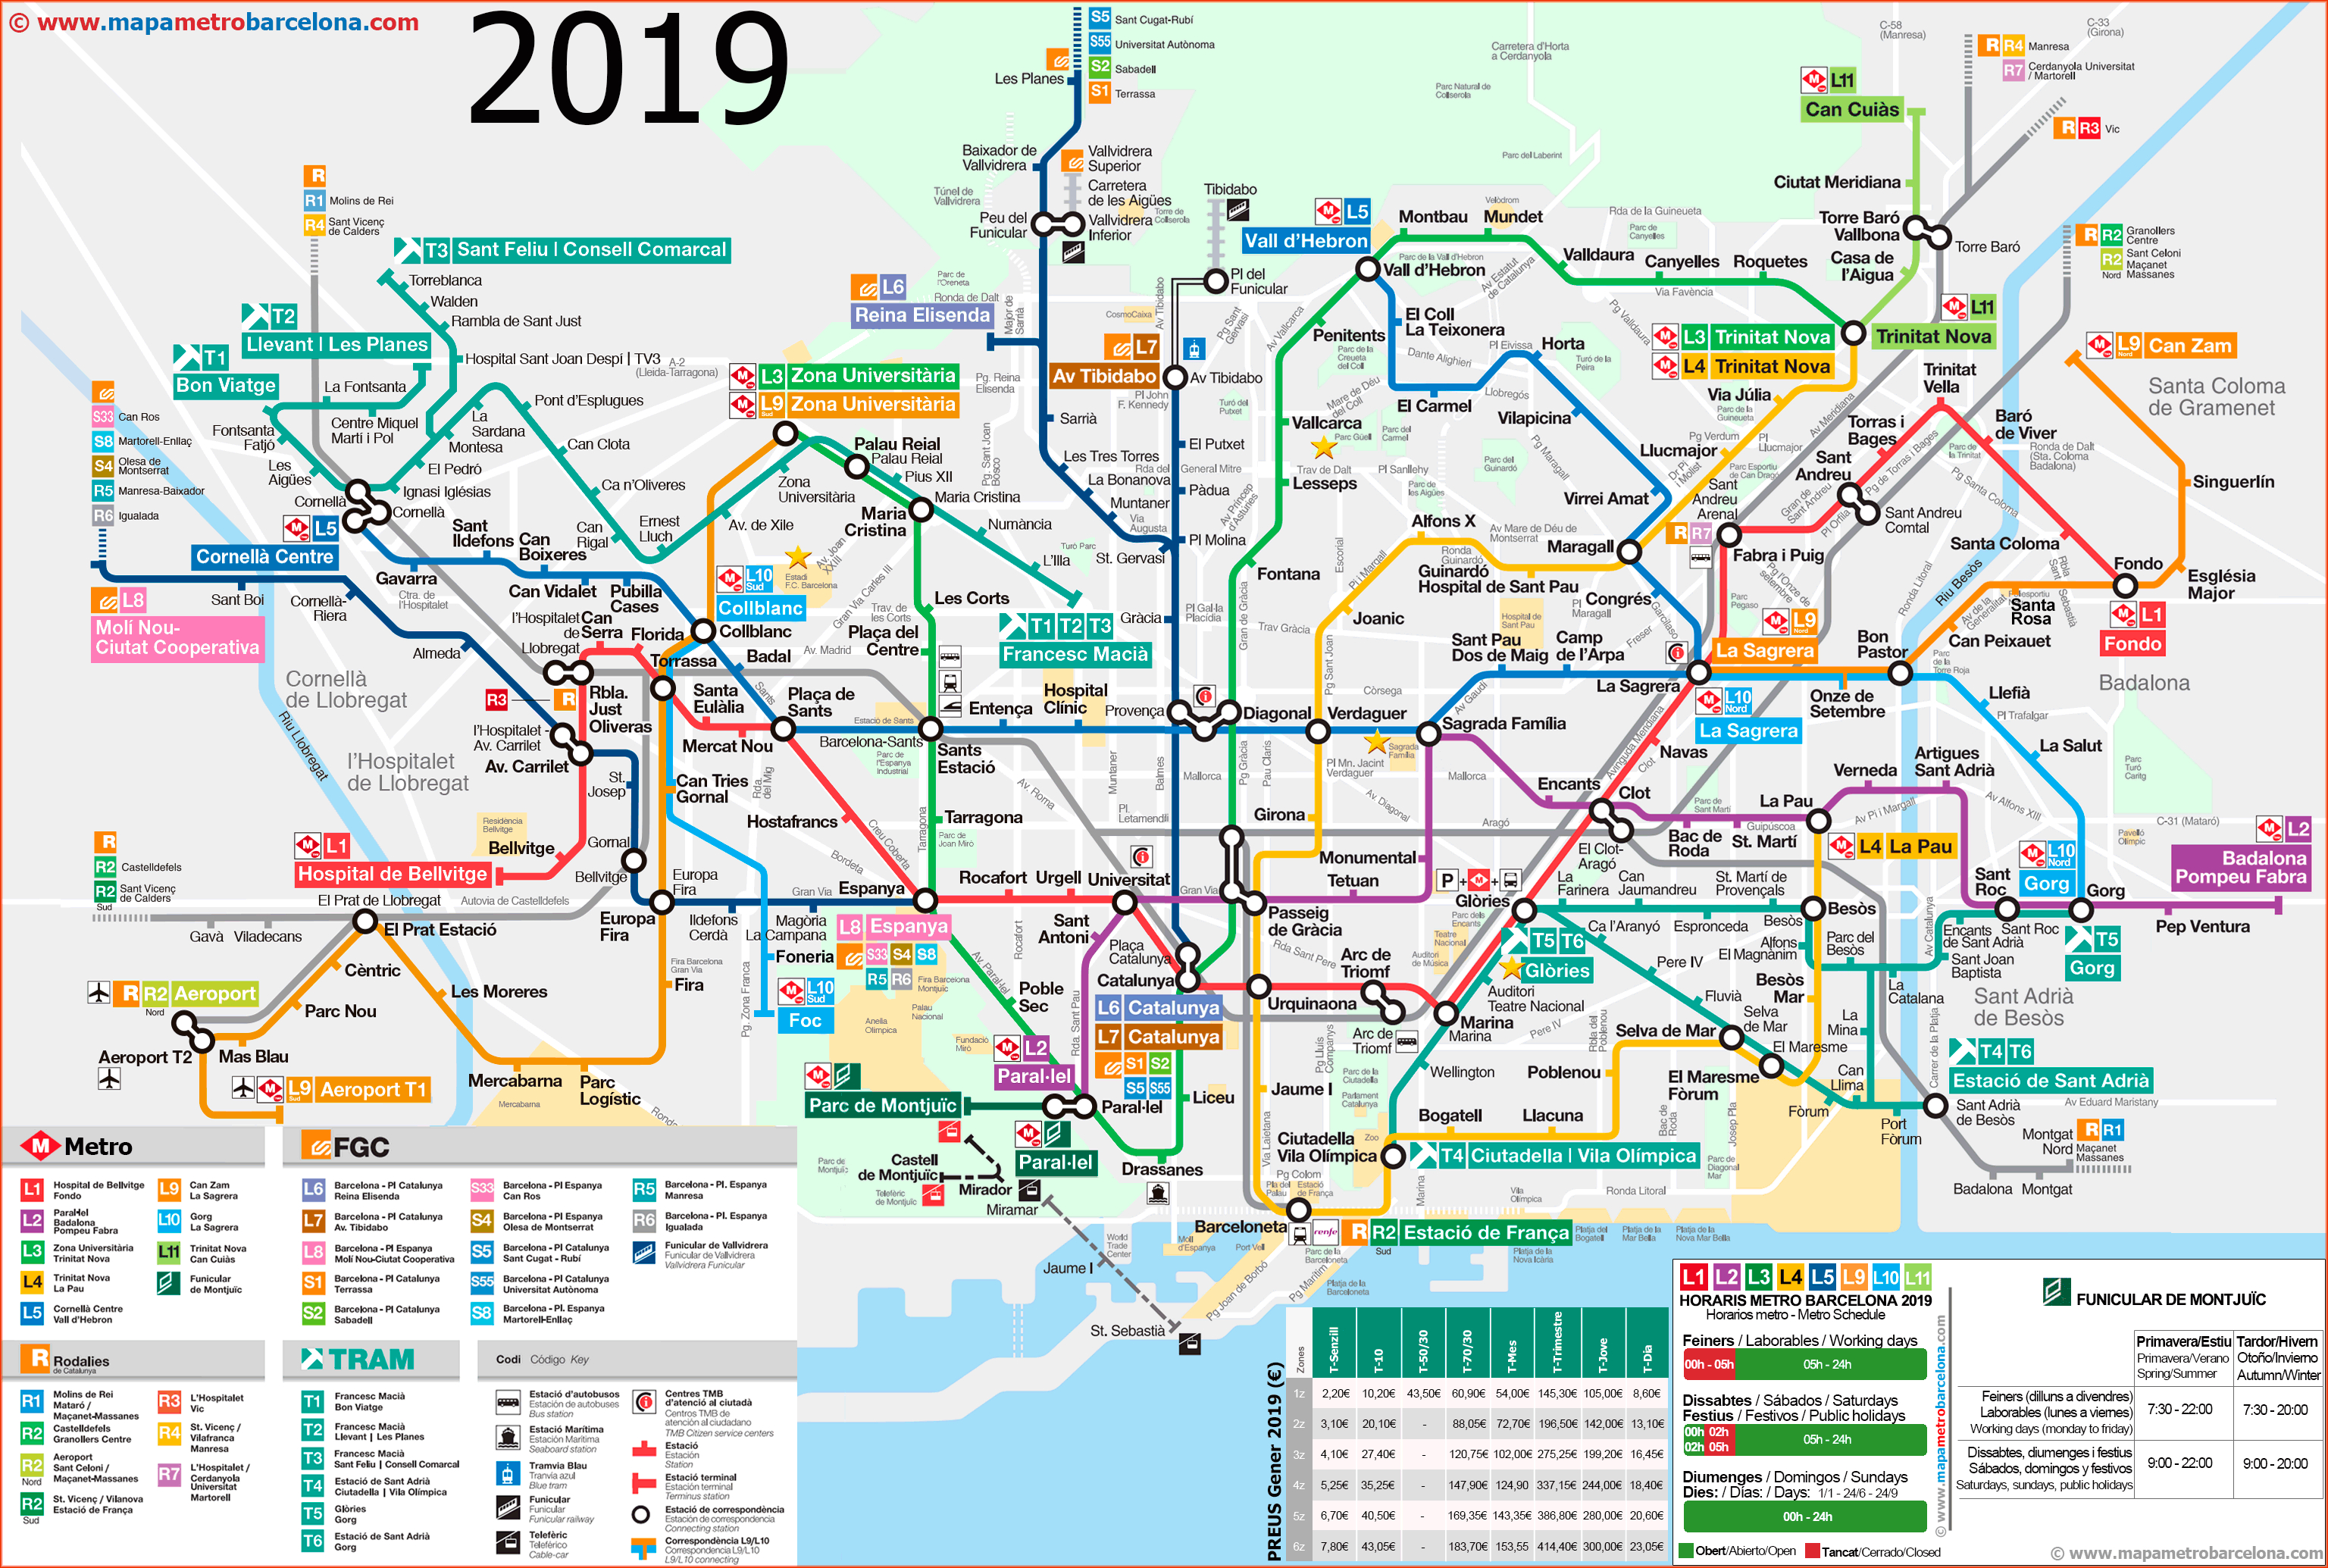 Metro Map Of Barcelona 2019 (The Best) - Printable Map Of Barcelona